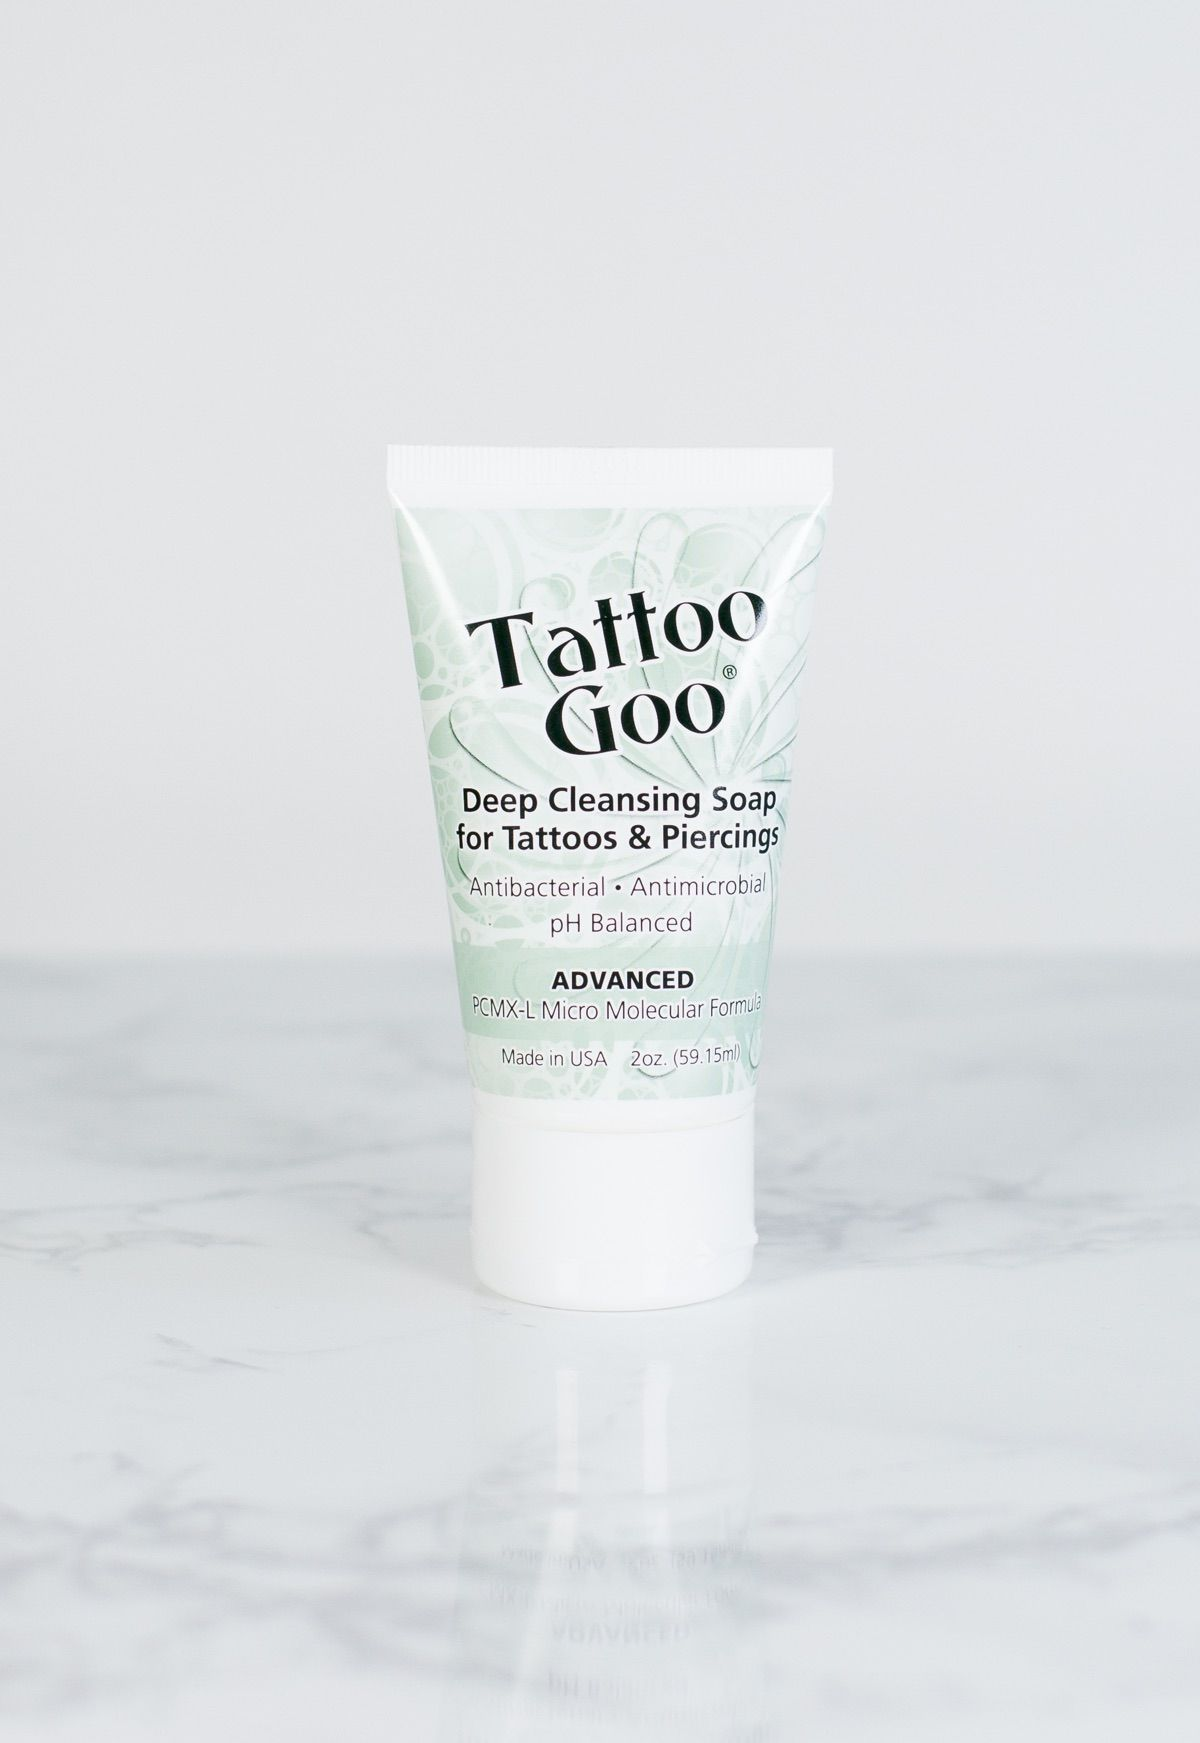 Alcohol Free Deep Cleansing Tattoo Soap Tattoo Goo Deep Cleansing Soap For Tattoos Tattoo Goo